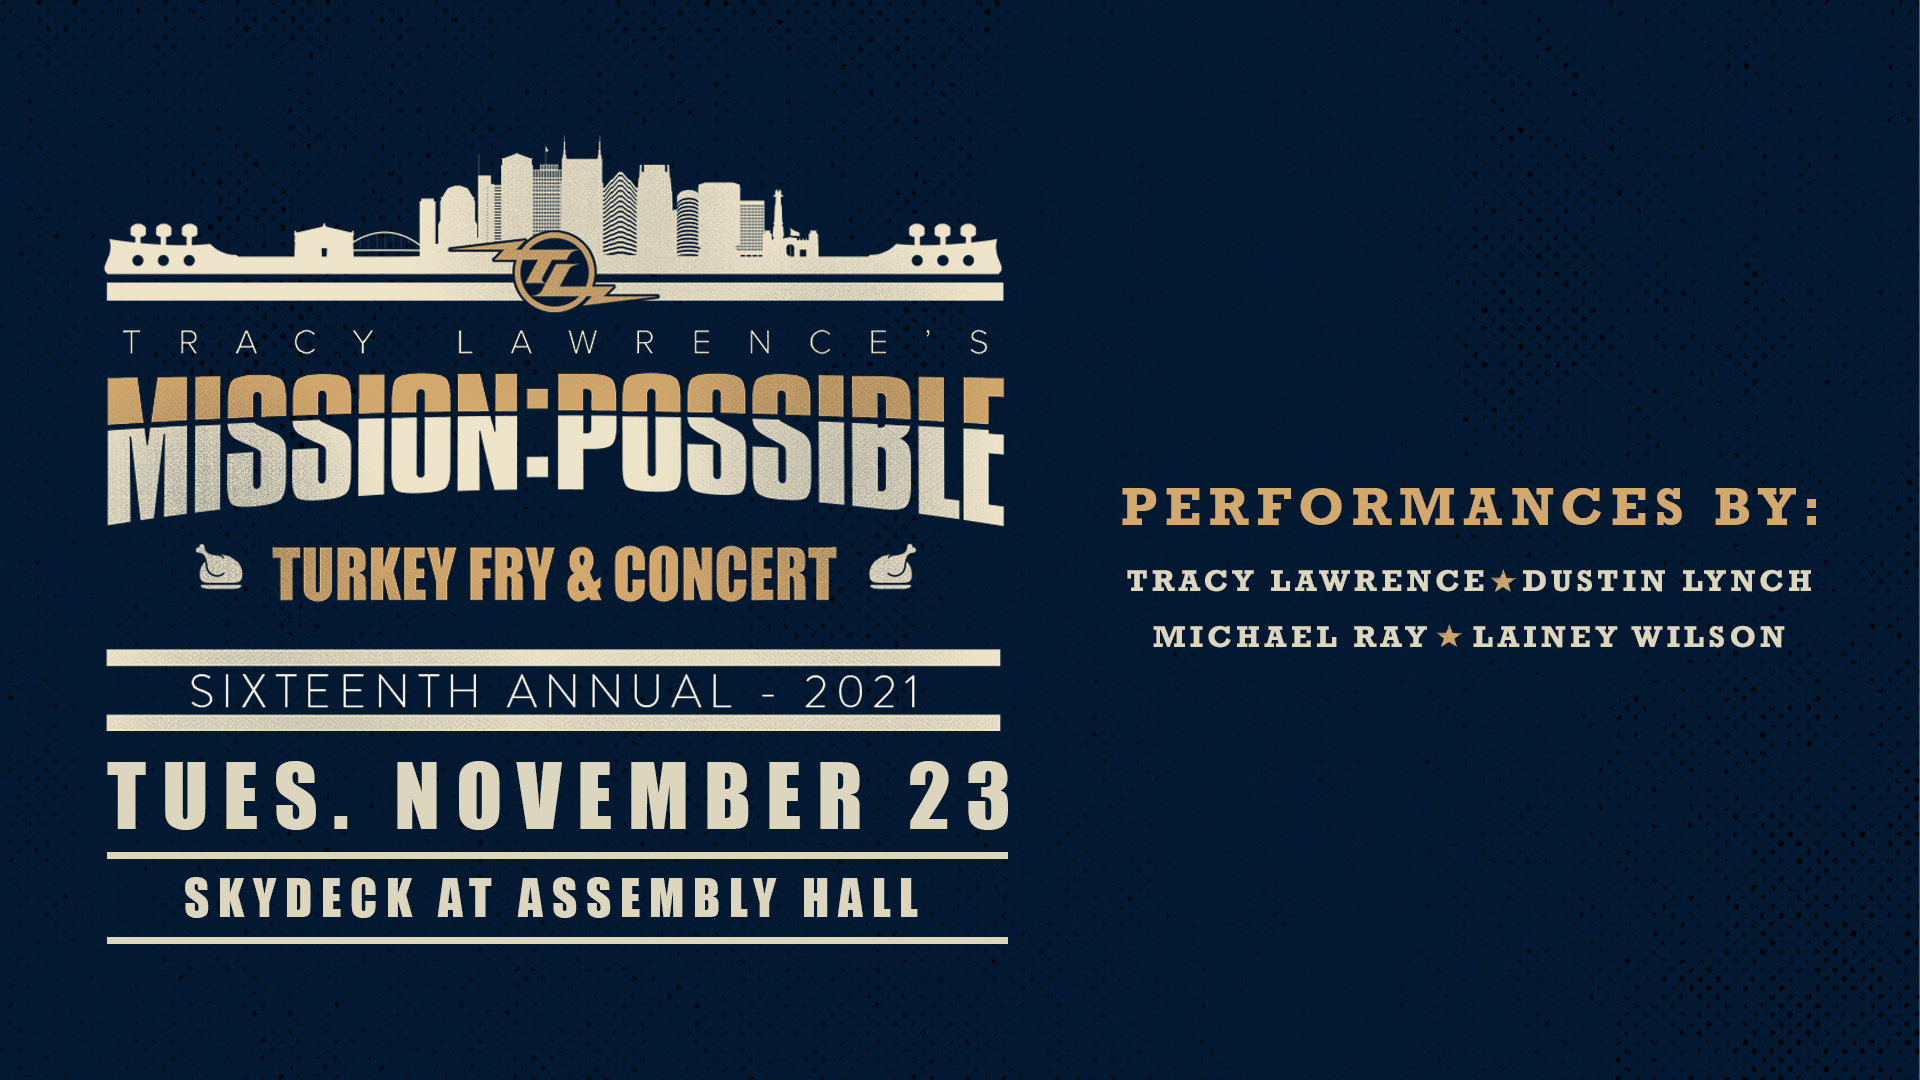 Promo image of Tracy Lawrence's Mission:Possible Turkey Fry Benefit Concert